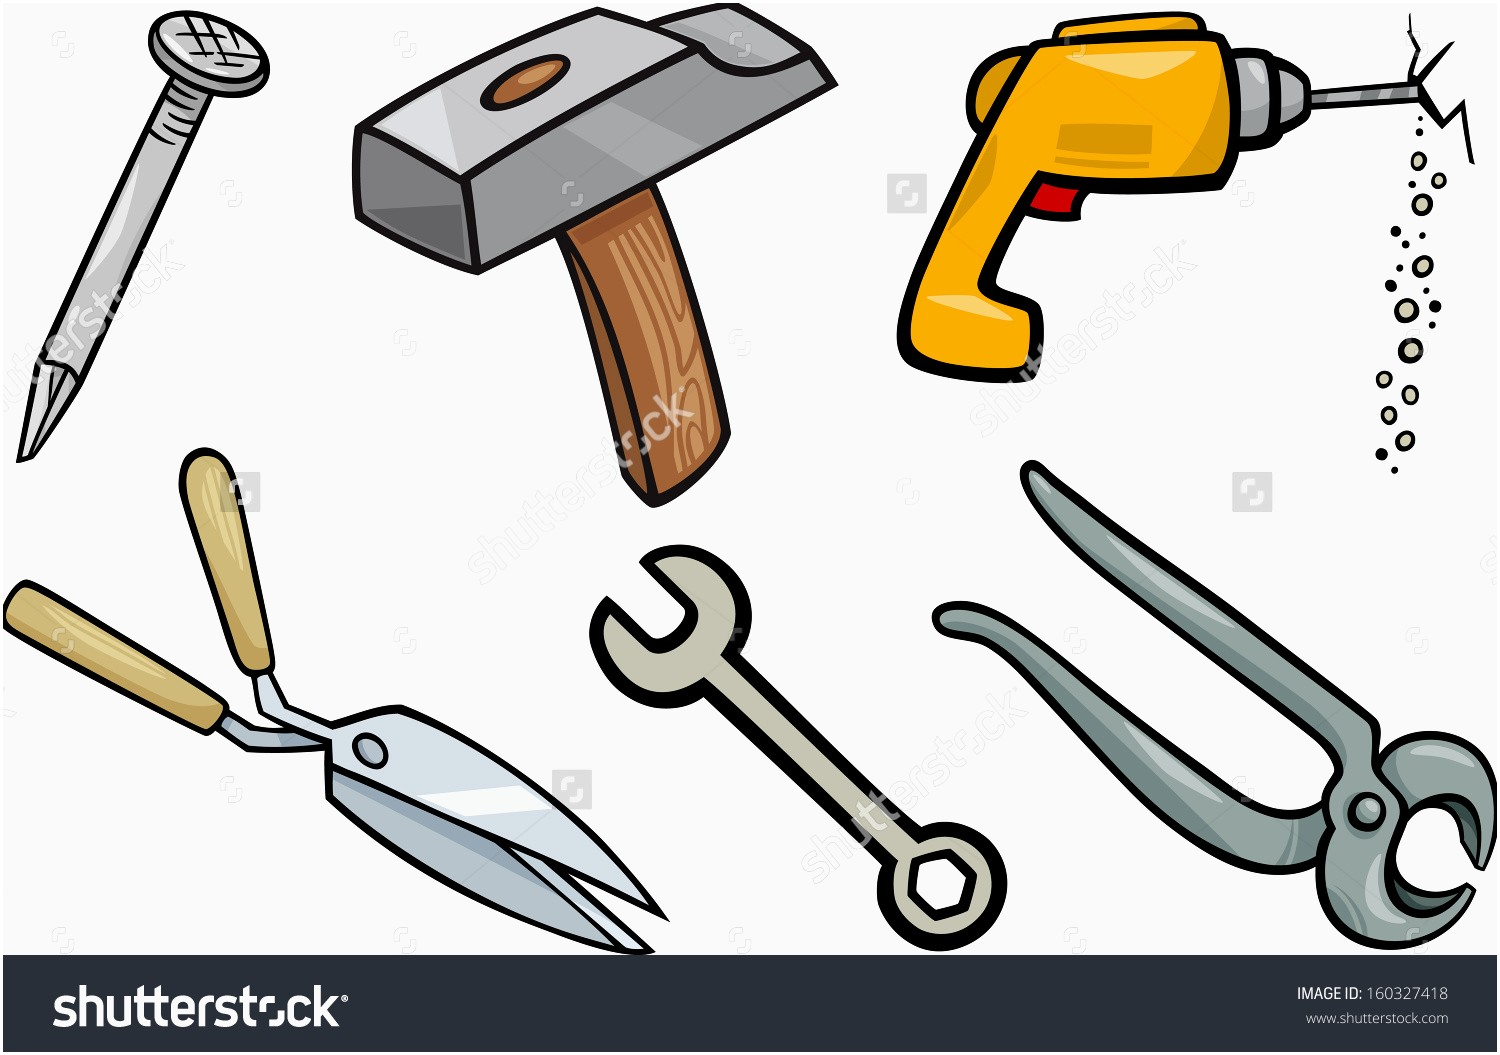 Woodworking Tools Clipart Lovely woodworking tools clipart.